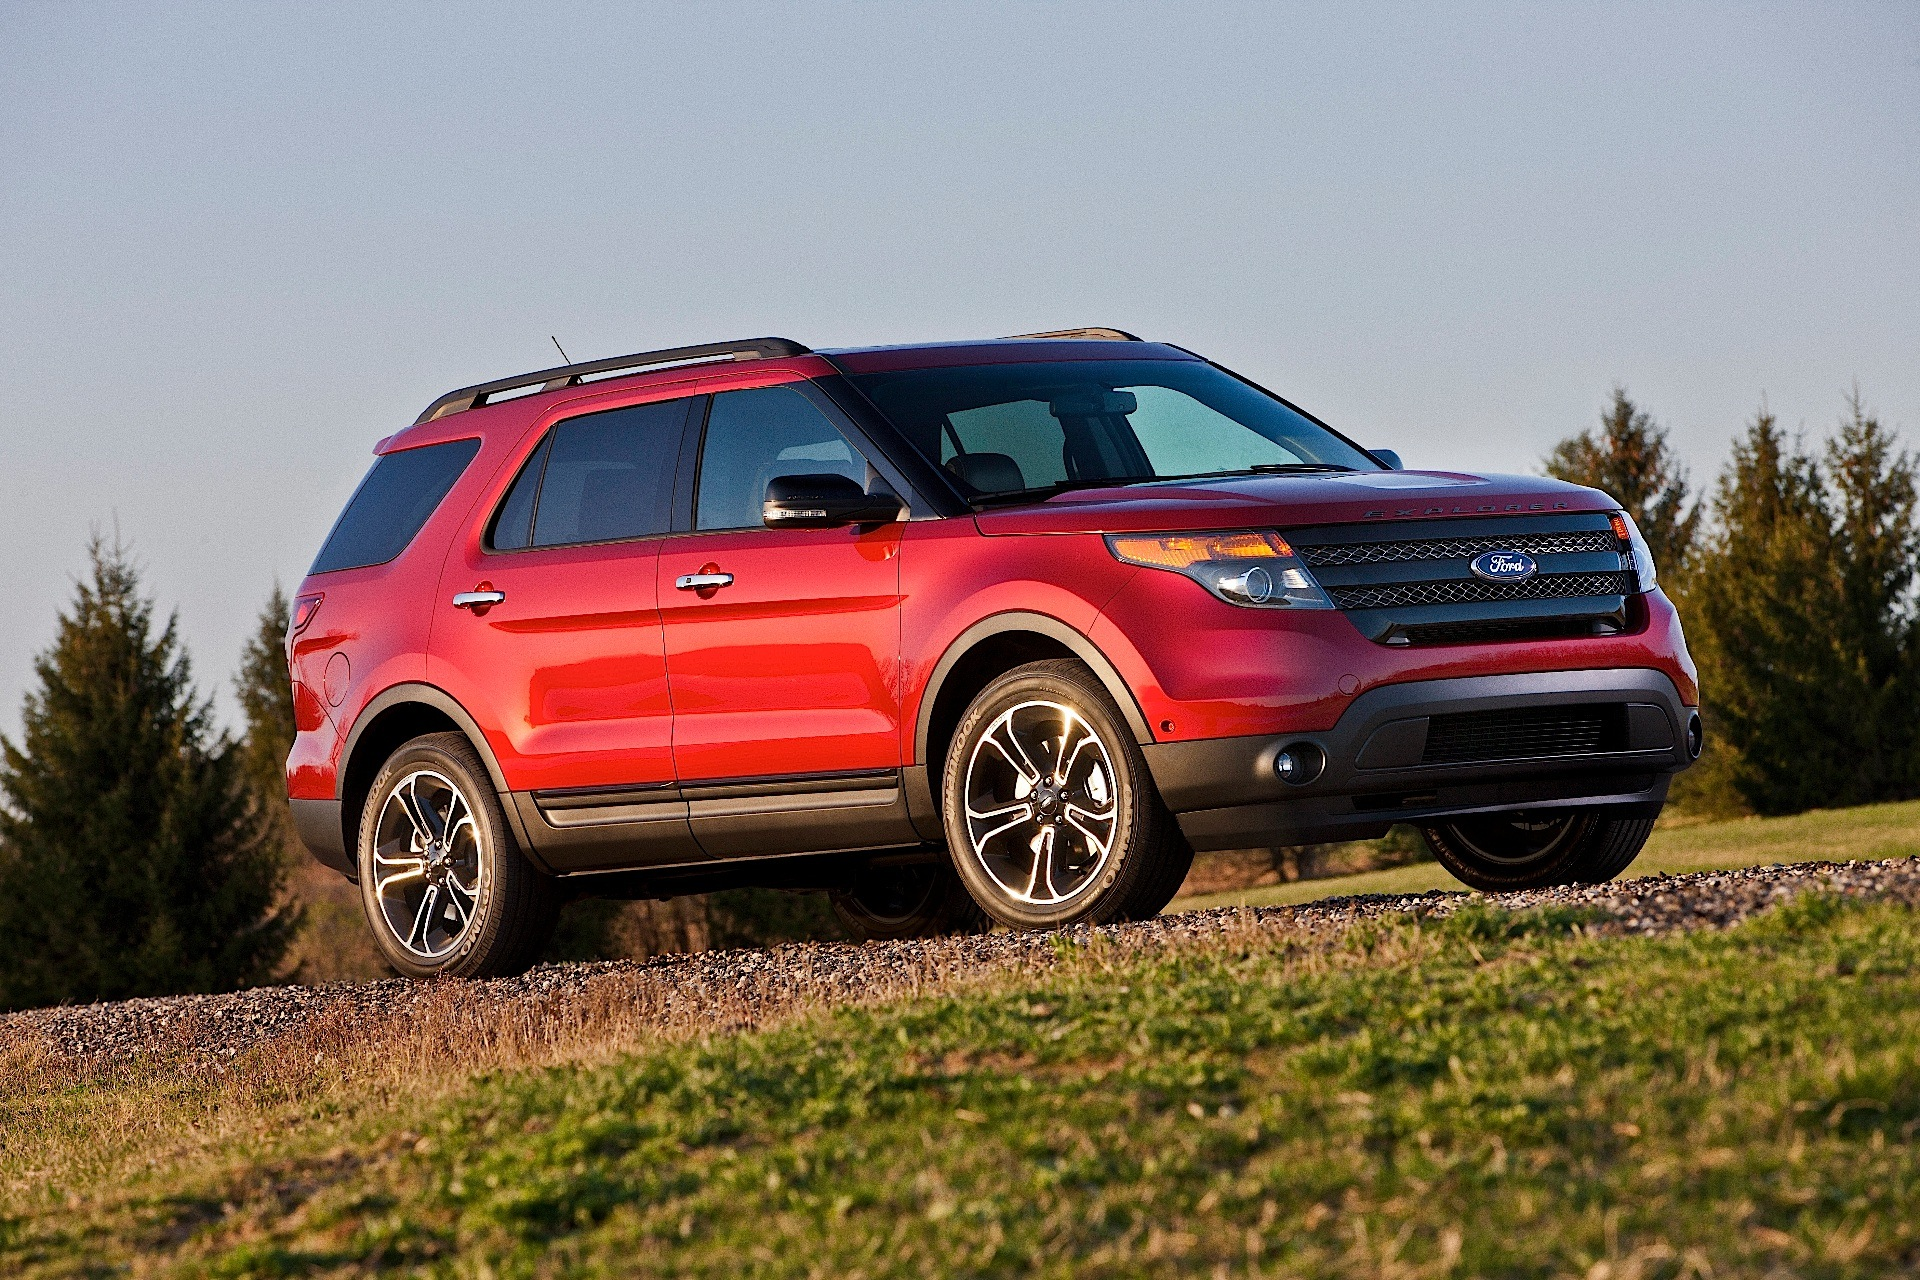 Land Rover Louisville >> FORD Explorer specs - 2010, 2011, 2012, 2013, 2014, 2015